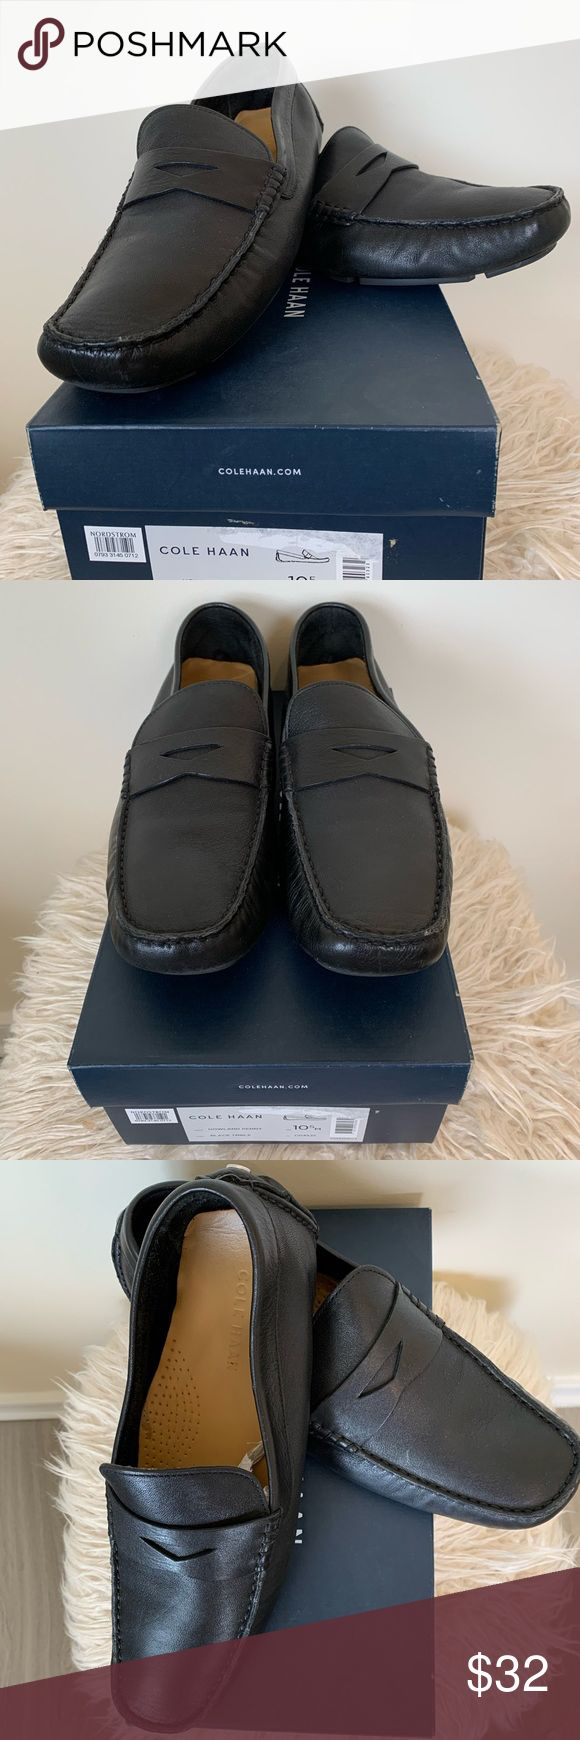 Cole Haan Howland Penny loafer | Loafers, Penny loafers ...